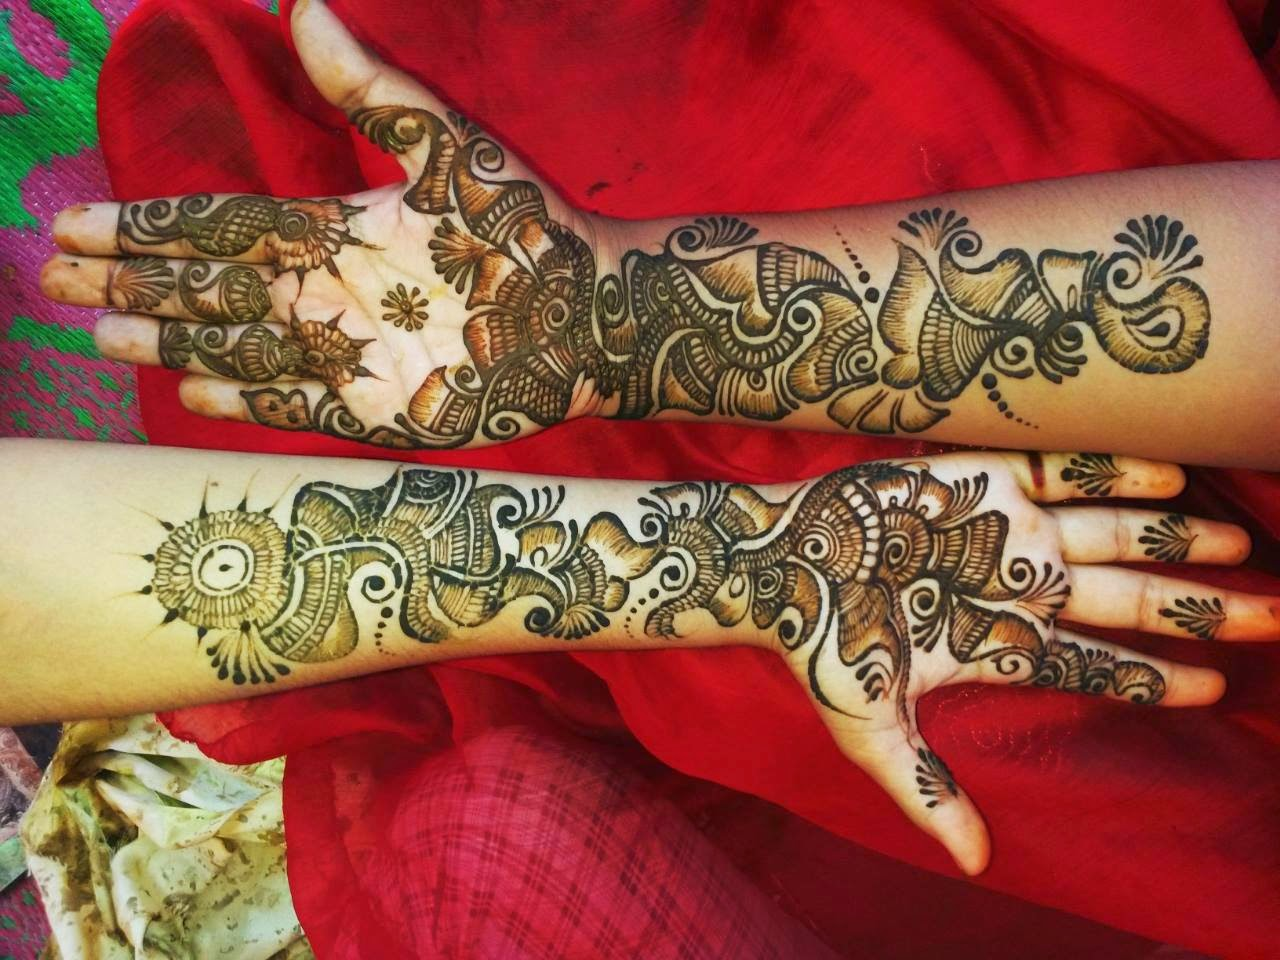 Bridal Mehndi Designs Henna Art Of Mehndi Designs Wallpapers Free